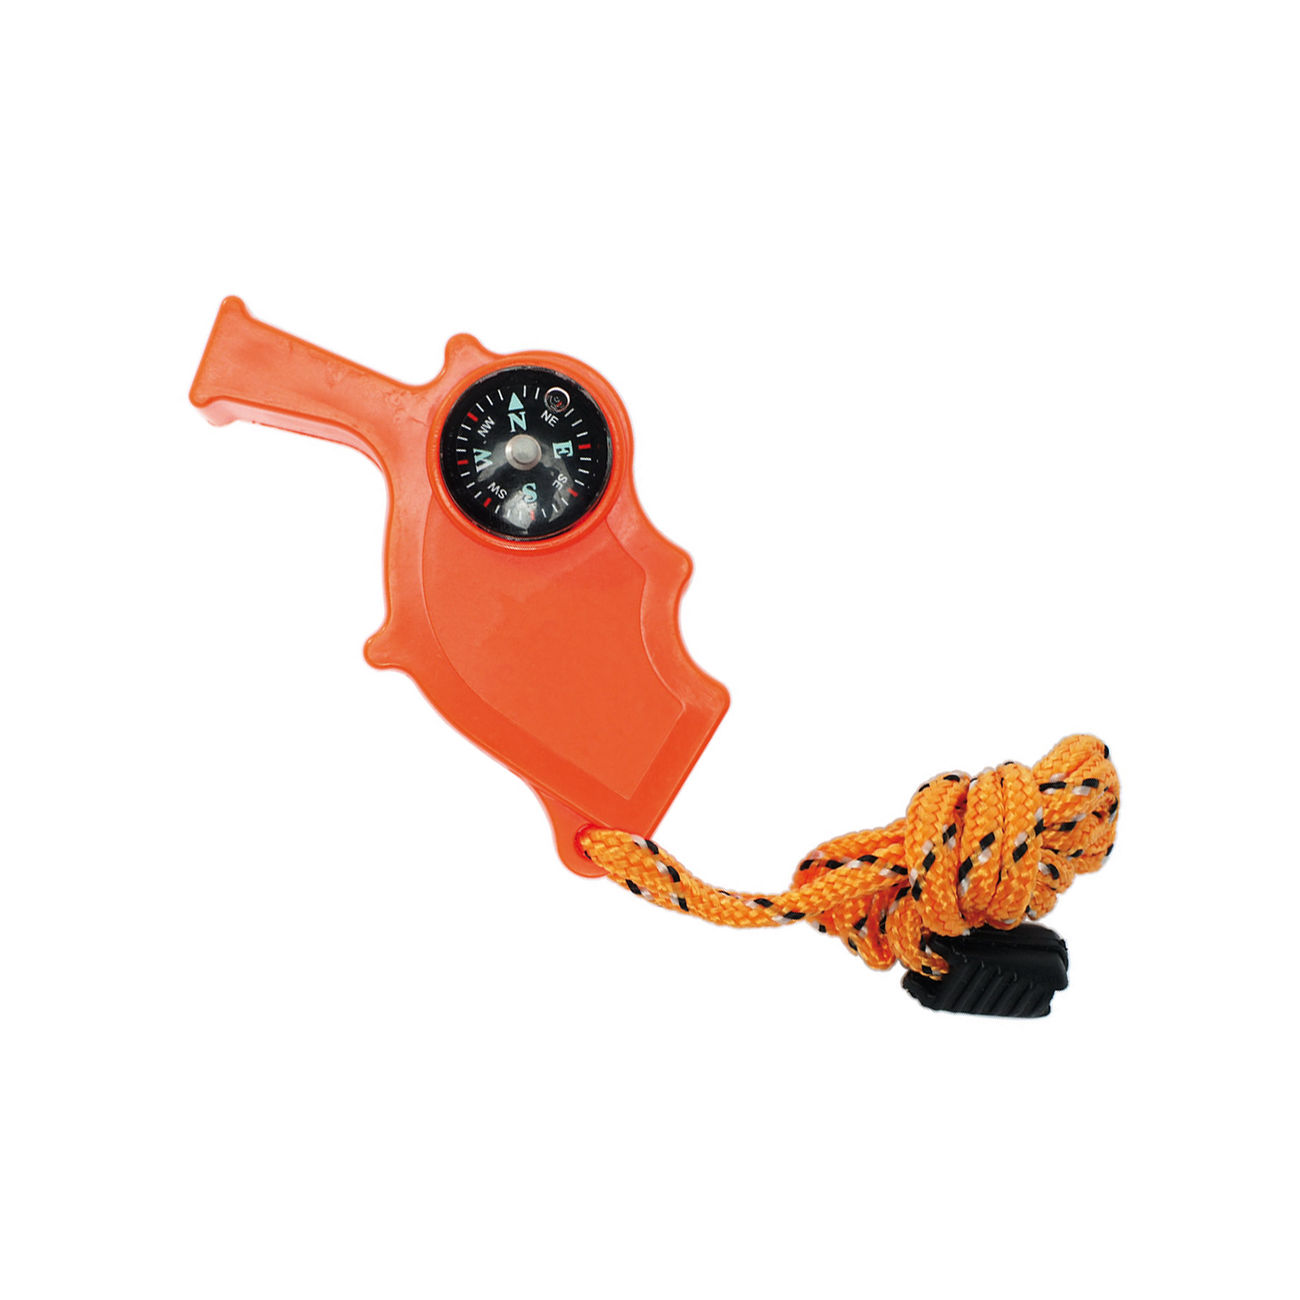 Mil-Tec Notfallpfeife Safety Whistle 4-in-1 orange 0